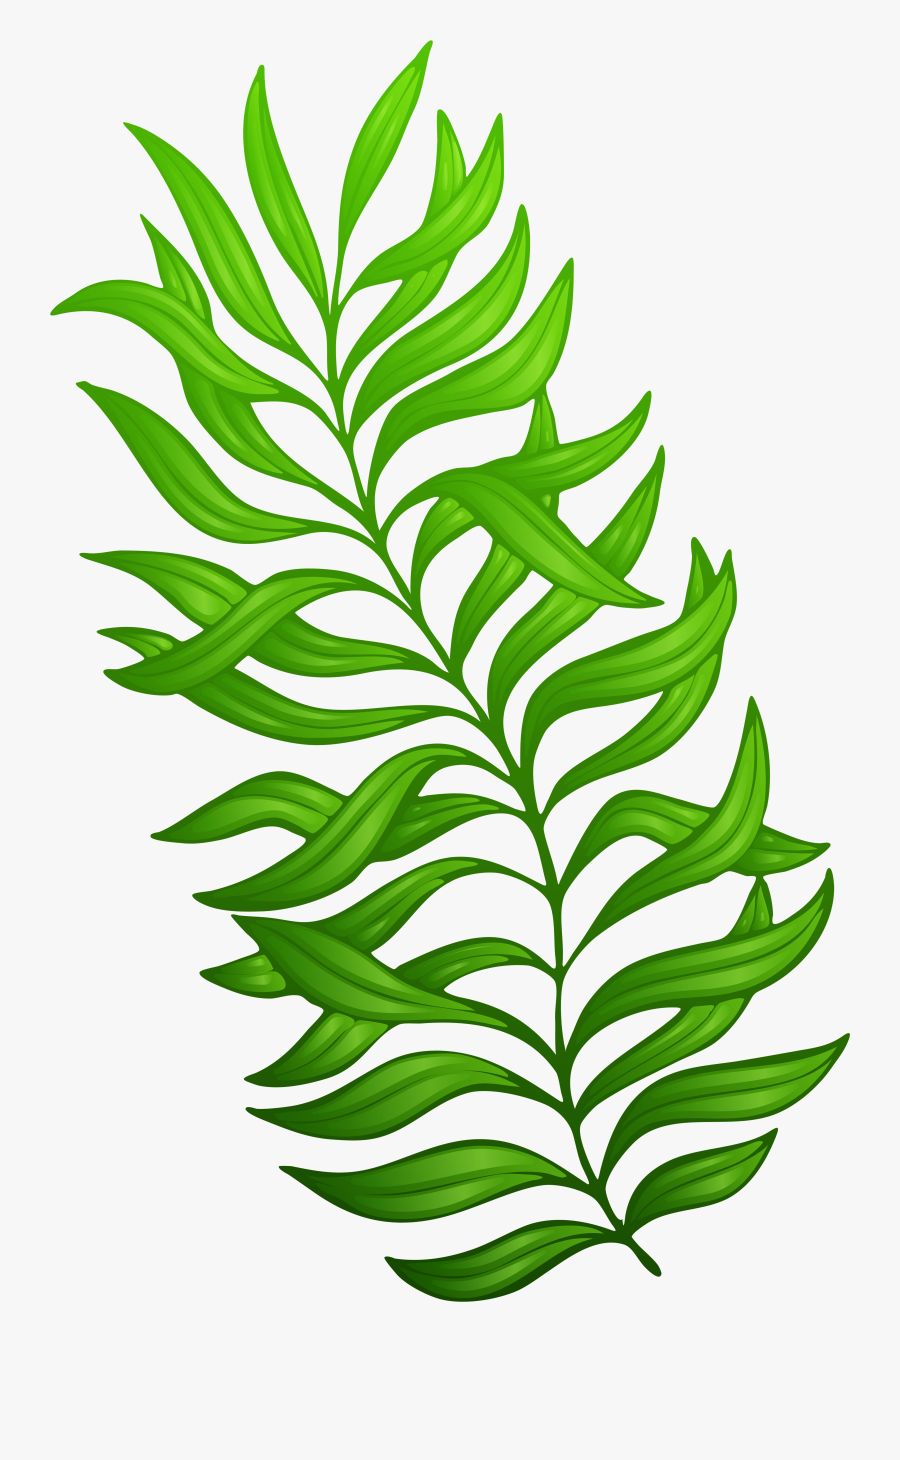 Exotic Green Image Gallery - Plant Clip Art Png, Transparent Clipart